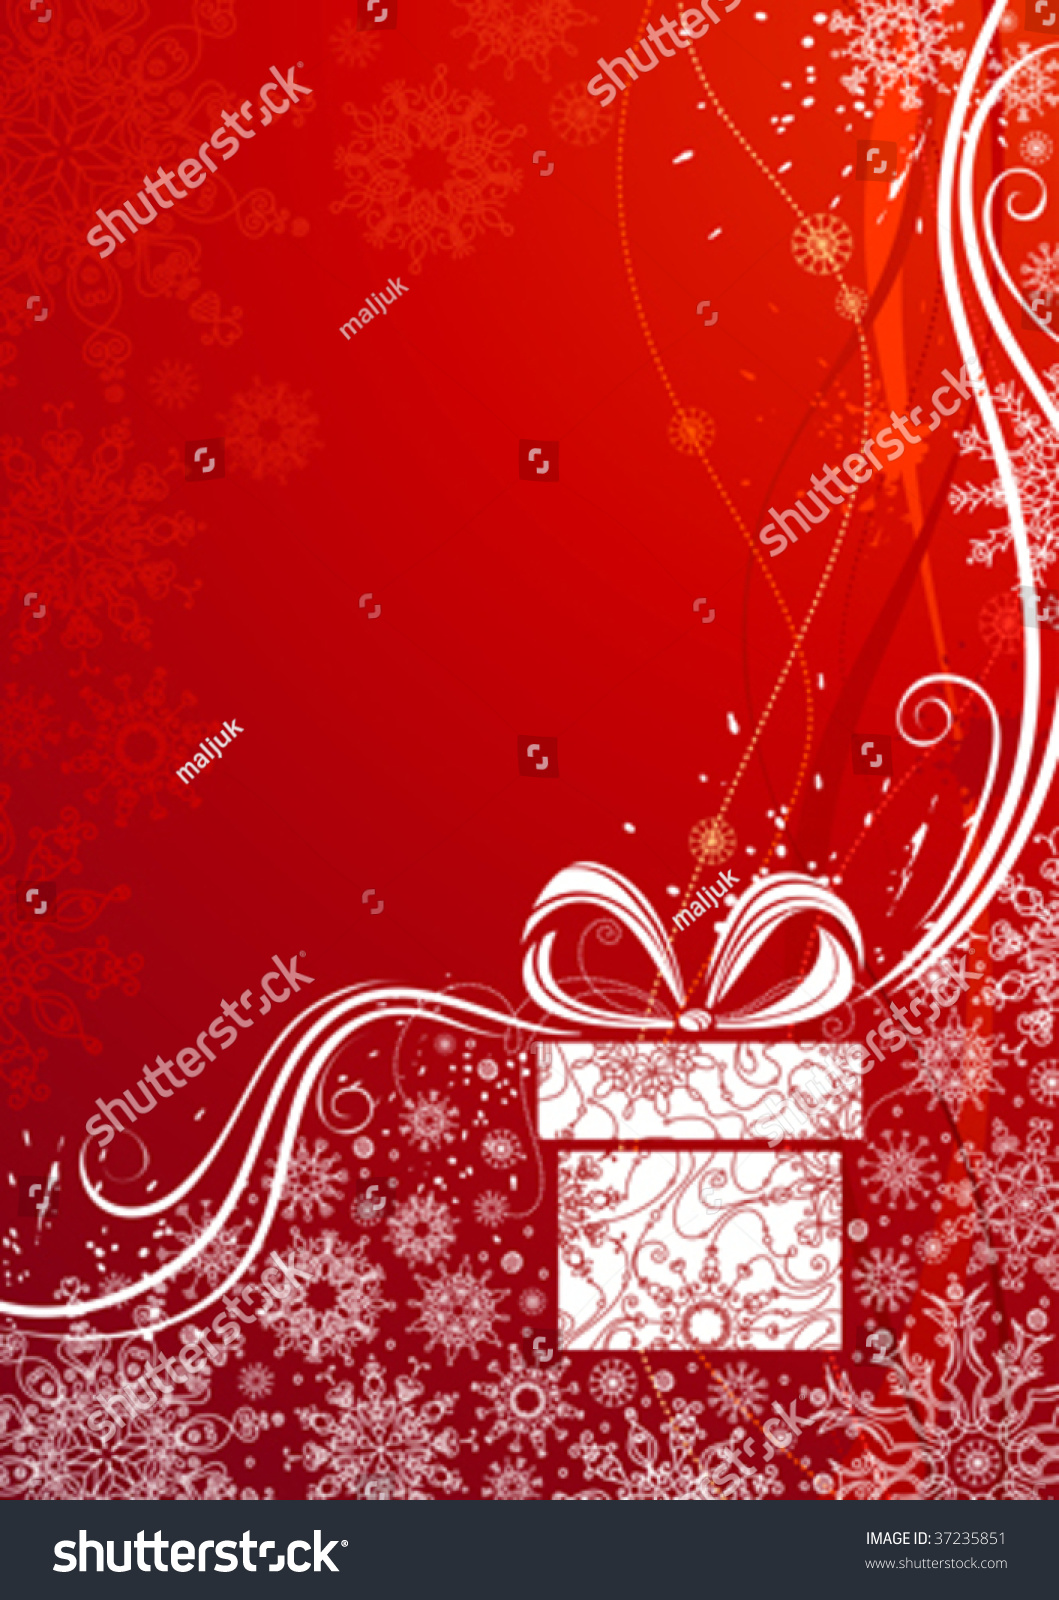 Grunge red christmas background vector illustration stock